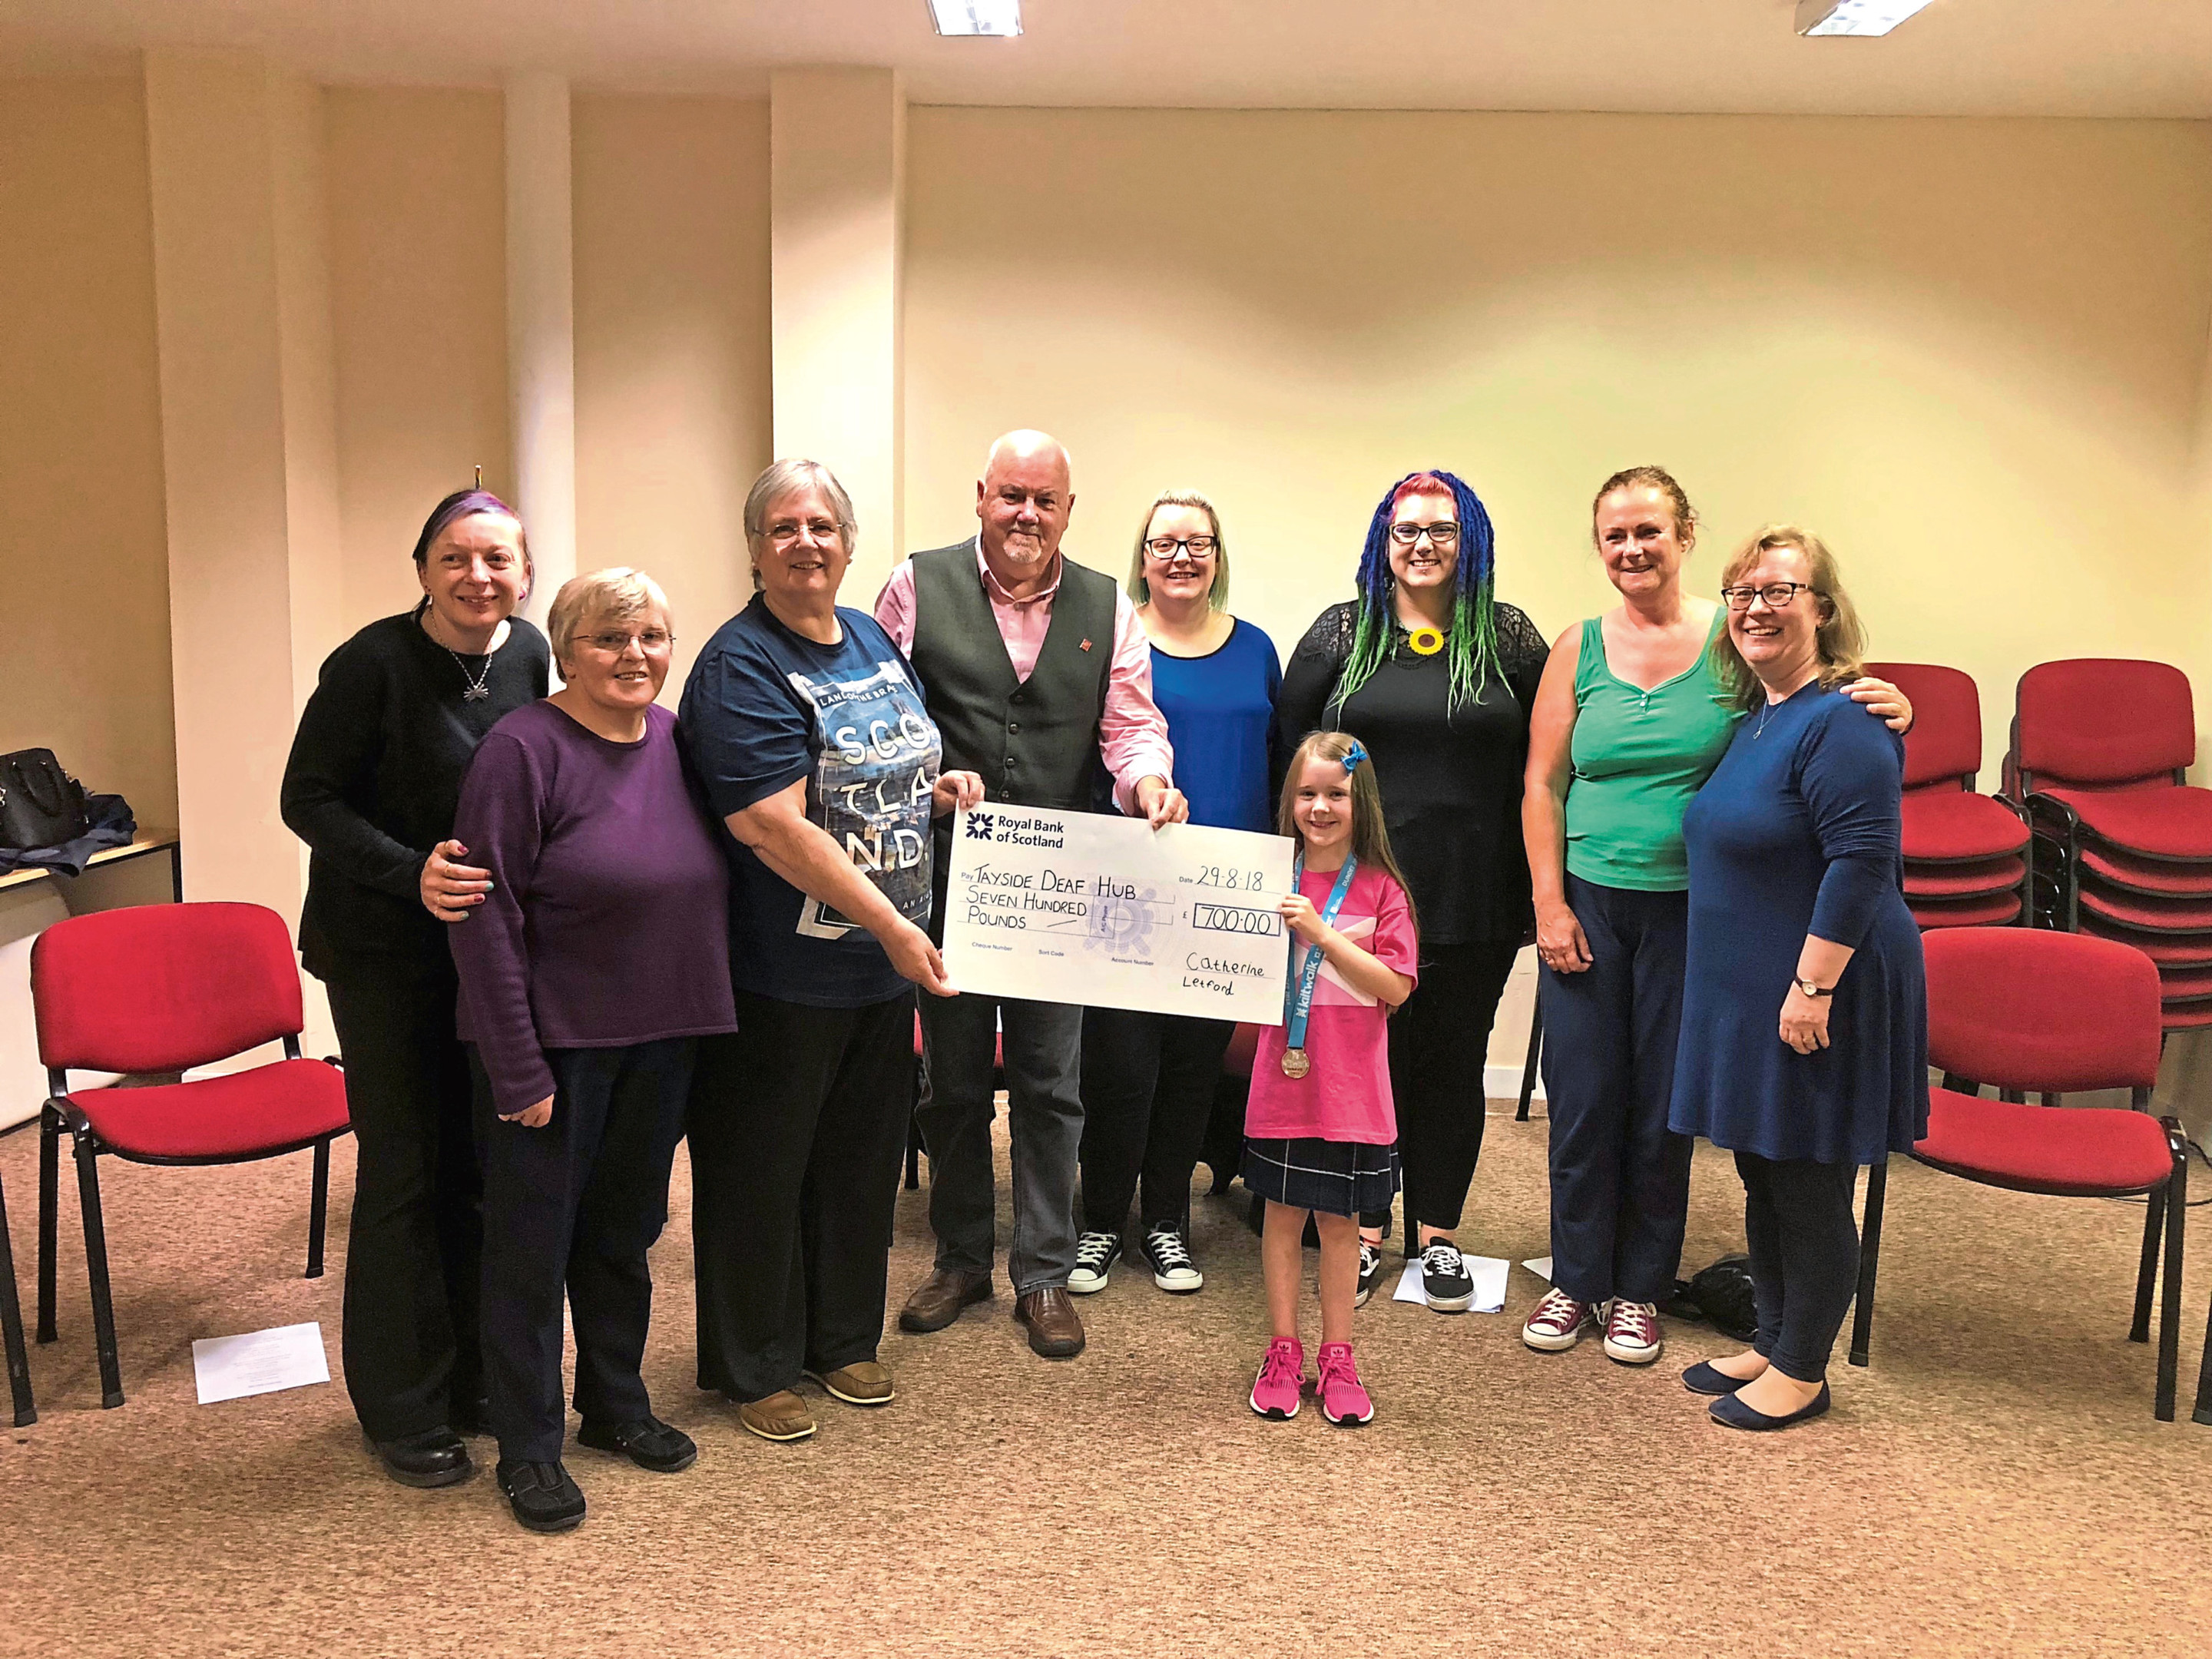 Catherine Letford hands over the cheque after raising £700.